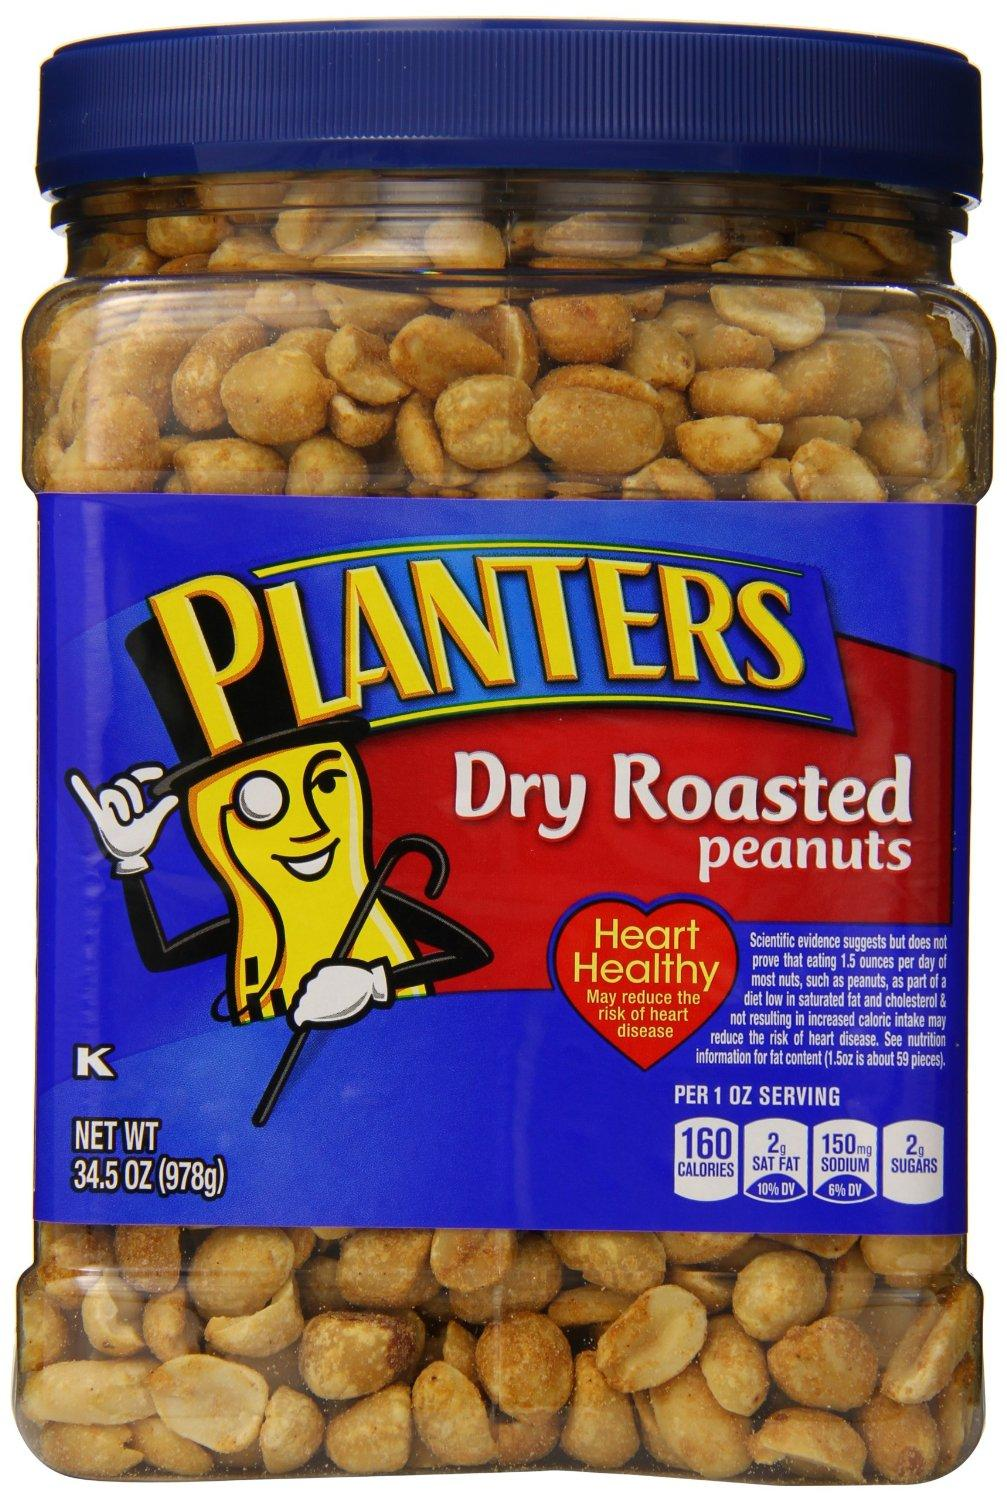 $9.93 Planters Dry Roasted Peanuts, With Pure Sea Salt, 34.5-oz. Packages (Count of 3)